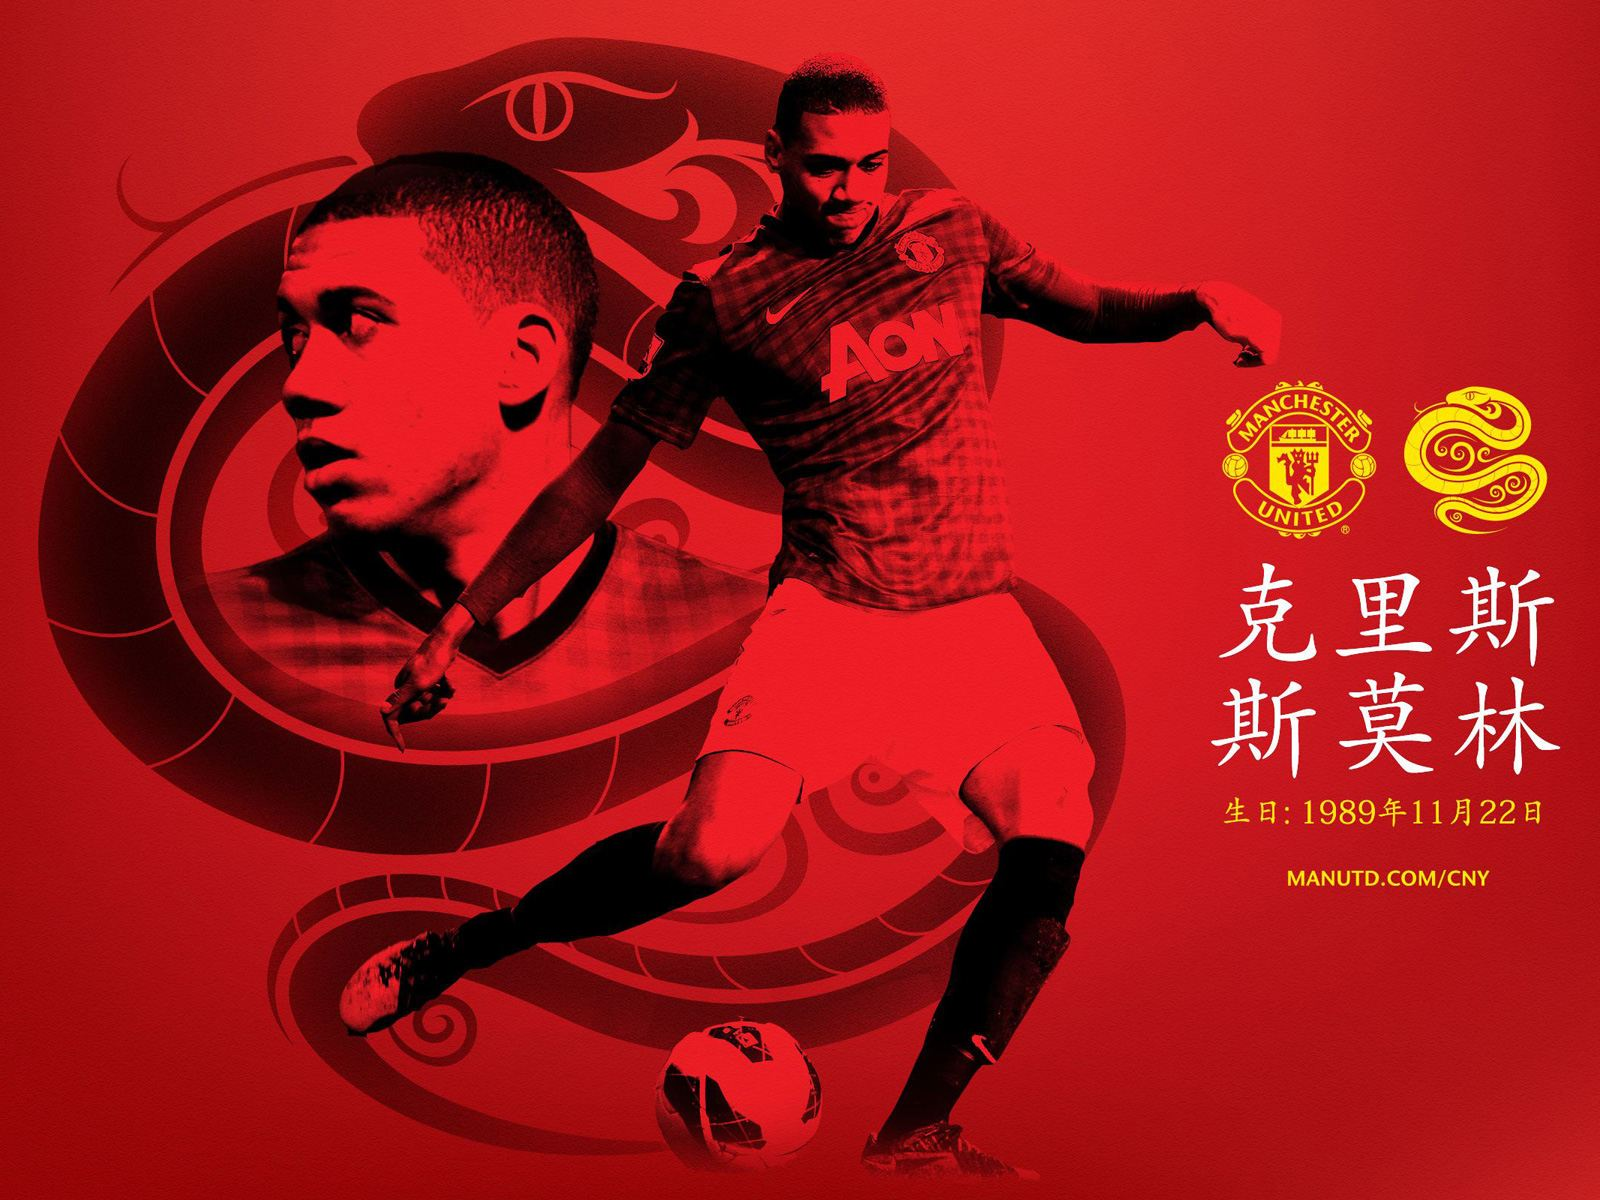 CNY - Chris Smalling